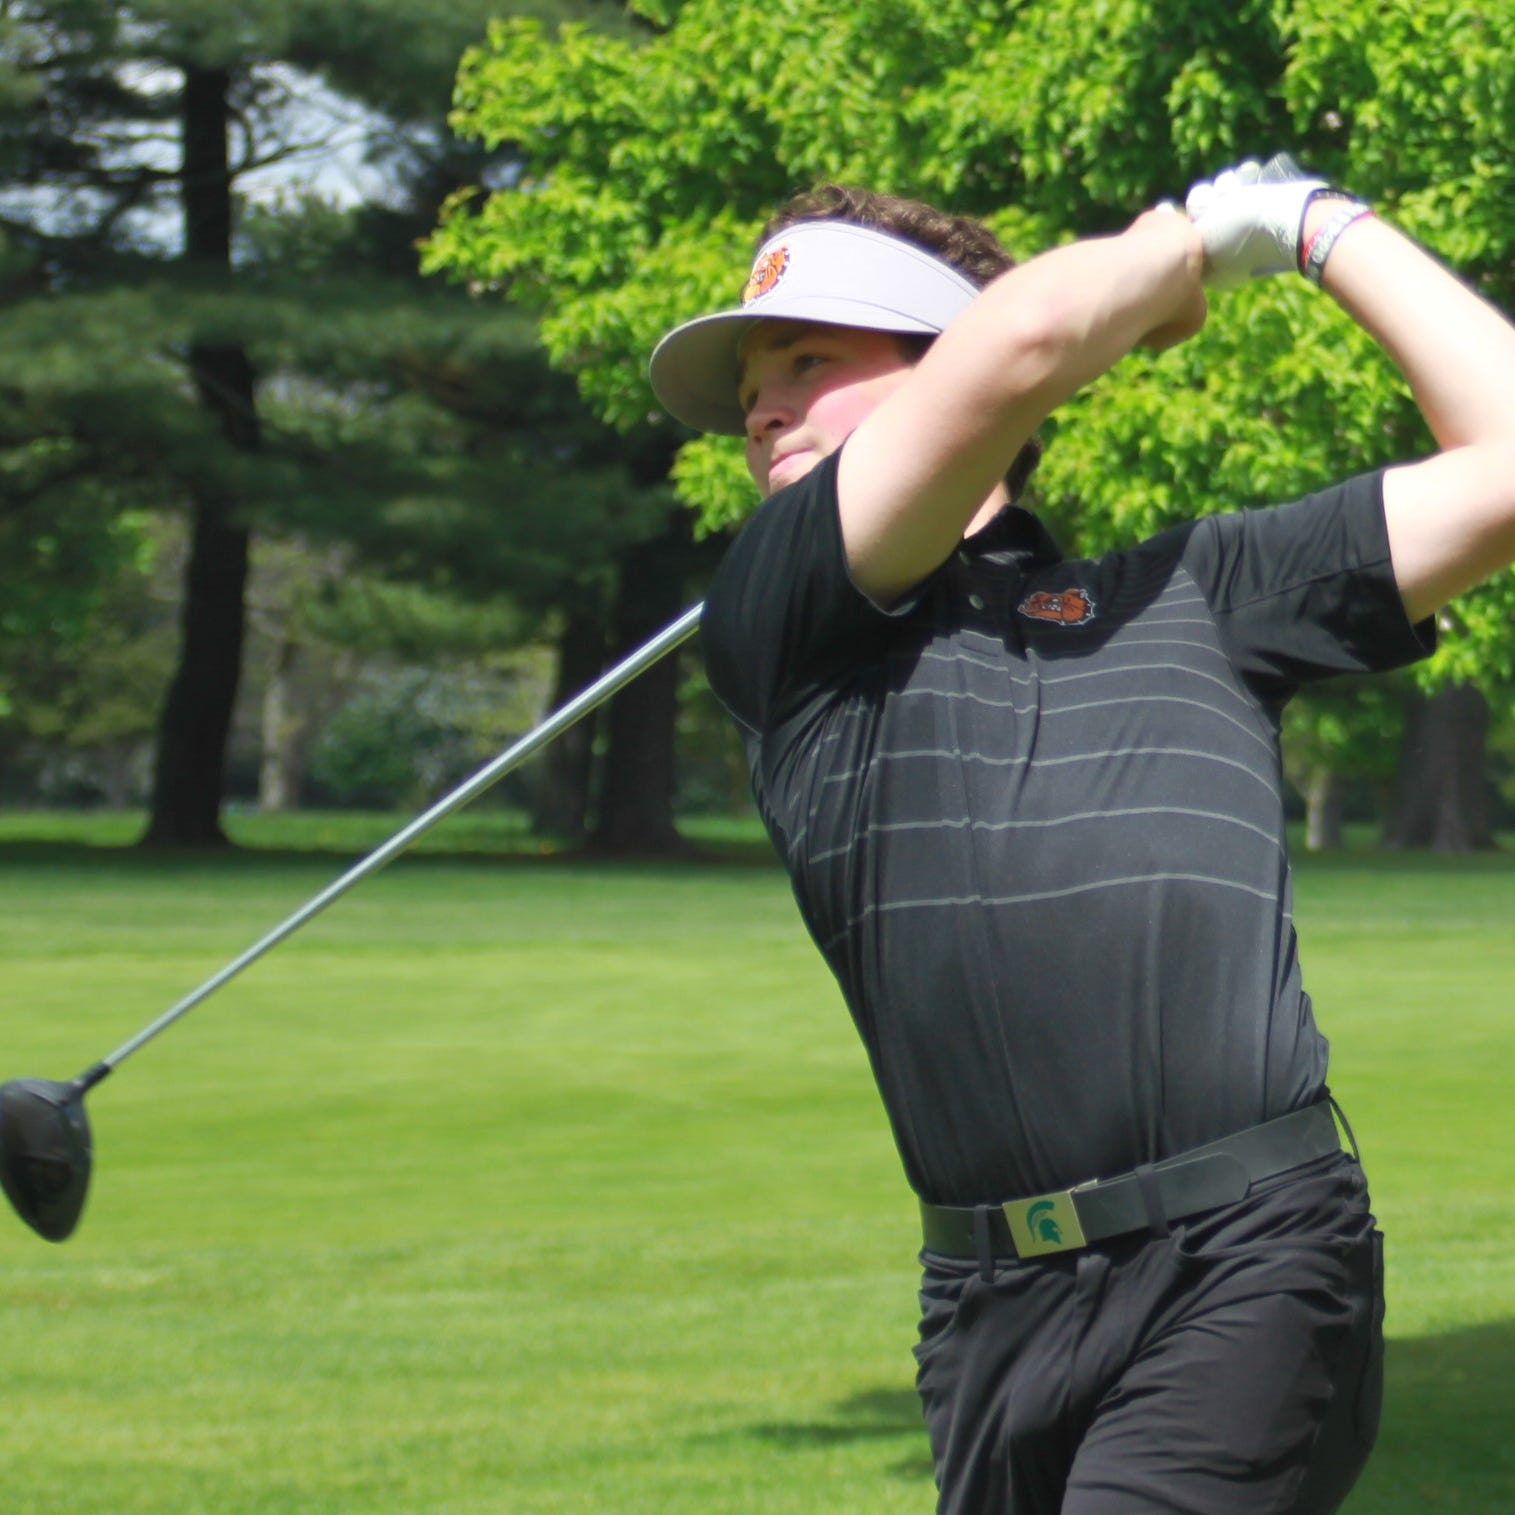 Rust from basketball shaken off, Howell's Samples shoots 75 in KLAA golf tournament